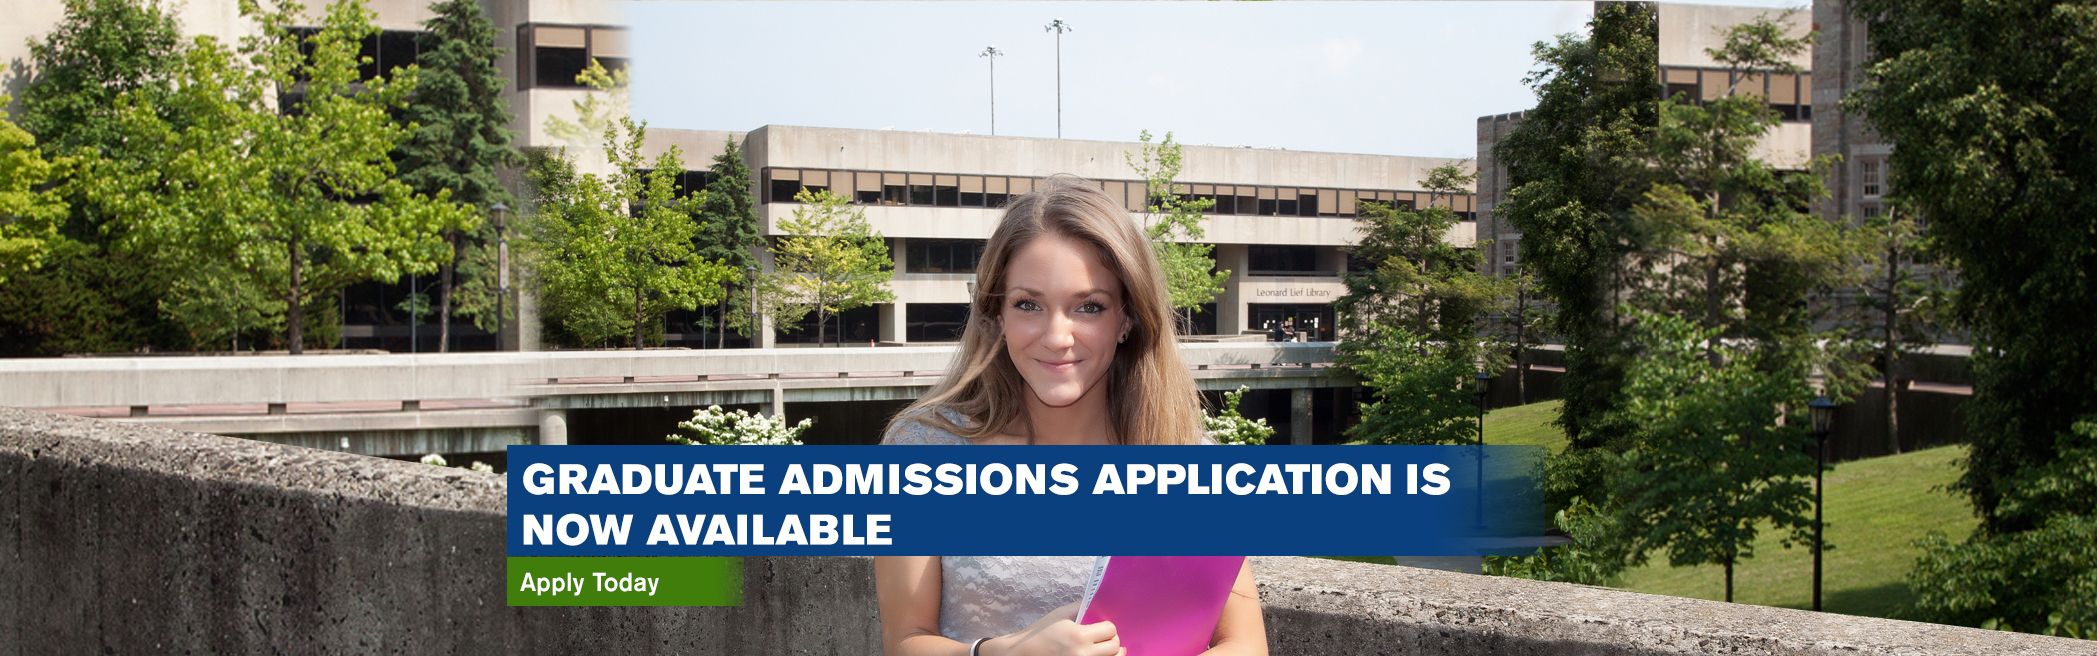 Graduate Admissions Application is Now Available. Apply Today!